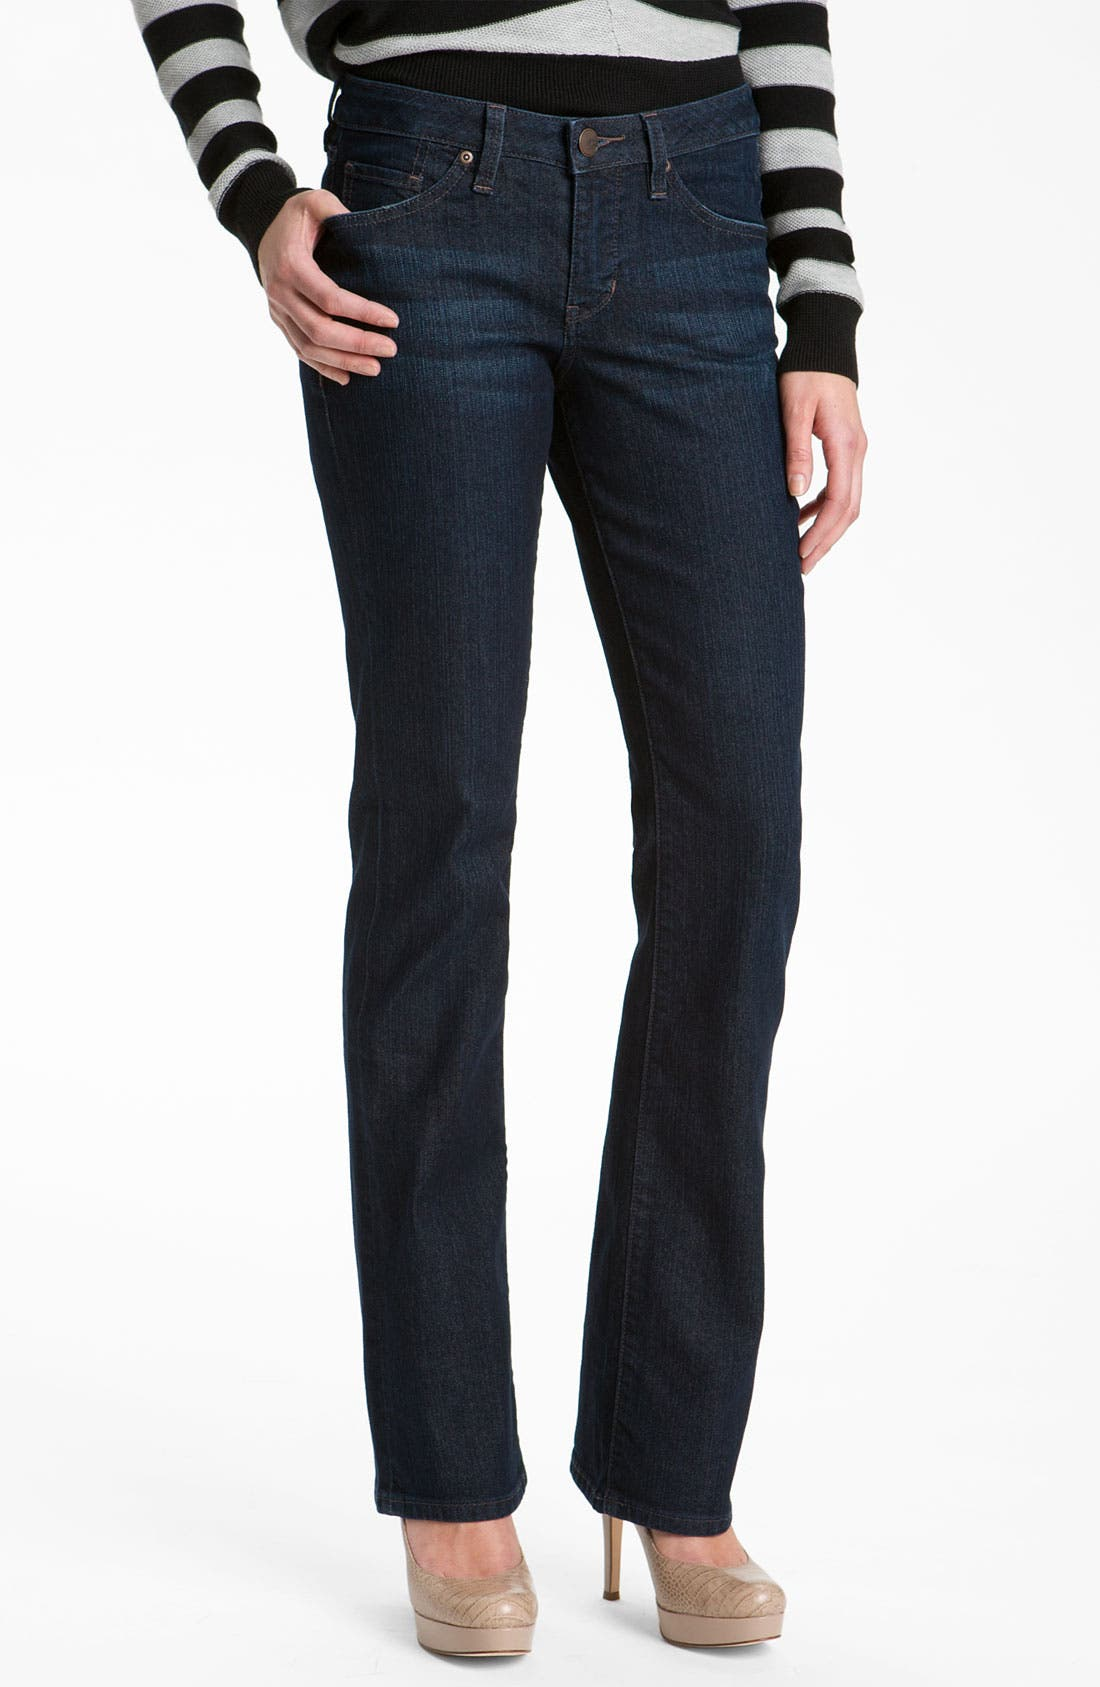 Main Image - Jag Jeans 'Lucy' Bootcut Jeans (Clean Dark)